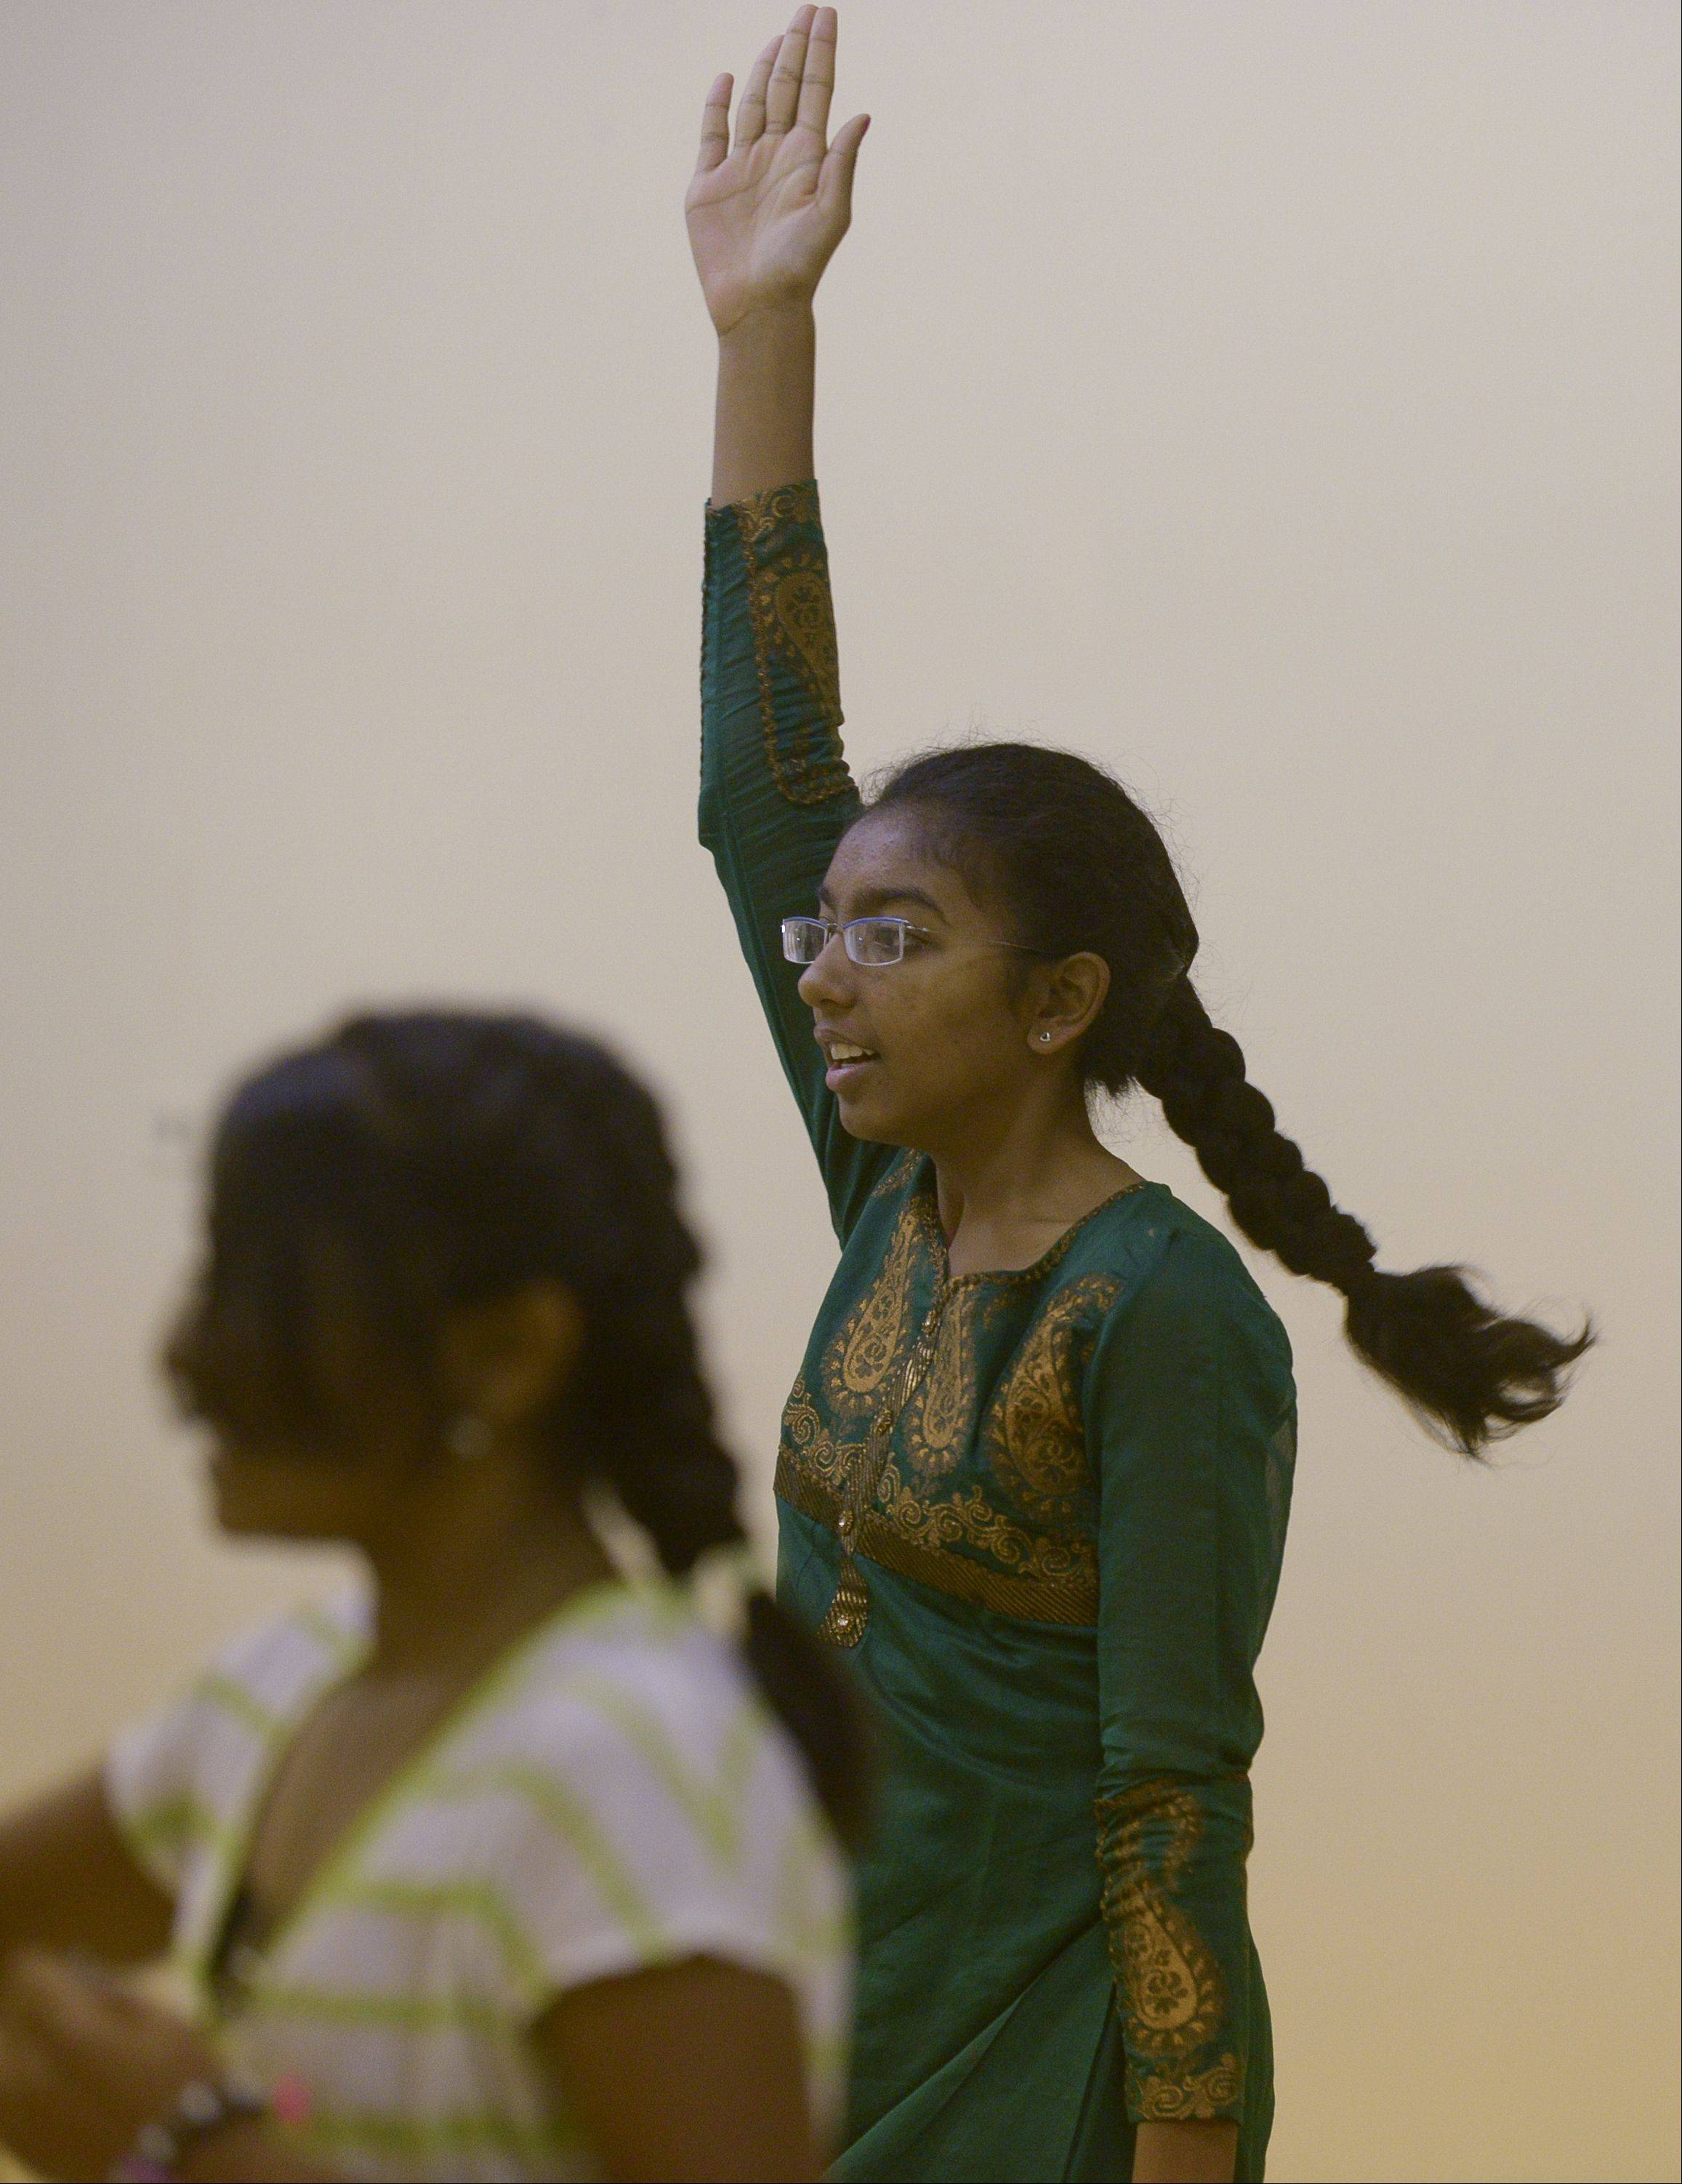 Rhea Singh, 14, of Lisle, practices to dance Sunday morning along the route of the Inaugural Edward Hospital Naperville Marathon and Half Marathon with fellow students at Bollywood Rhythms studio in Naperville.